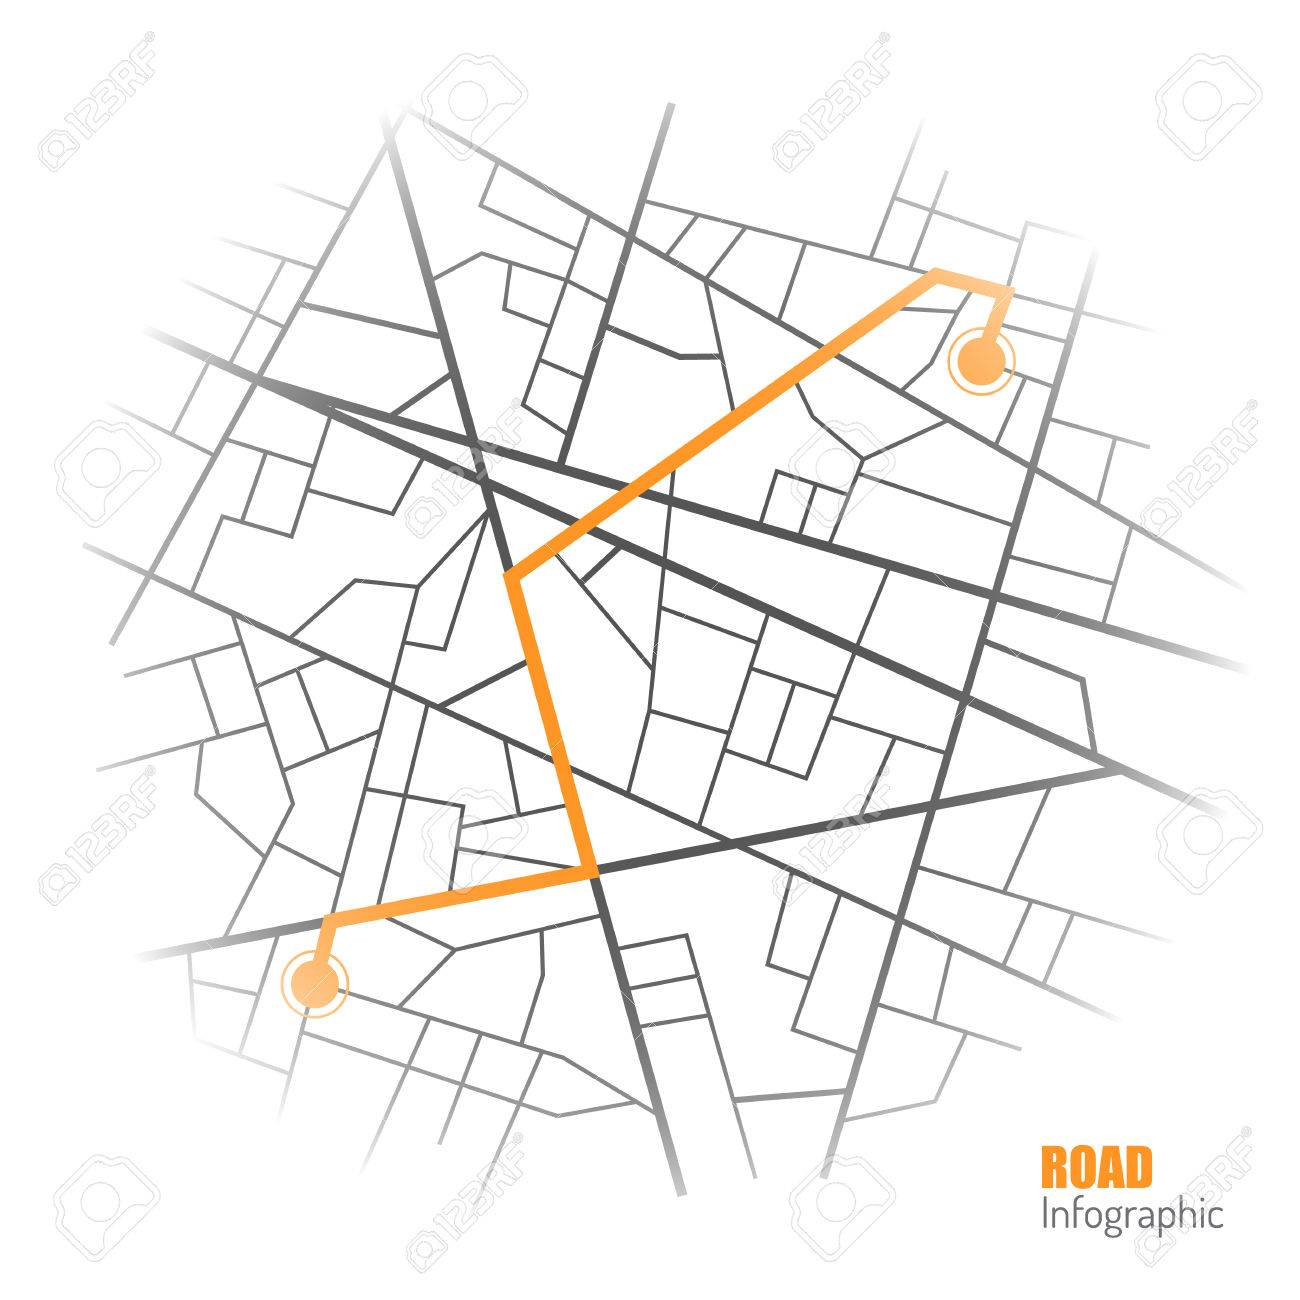 Road Map Drawing at GetDrawings com | Free for personal use Road Map